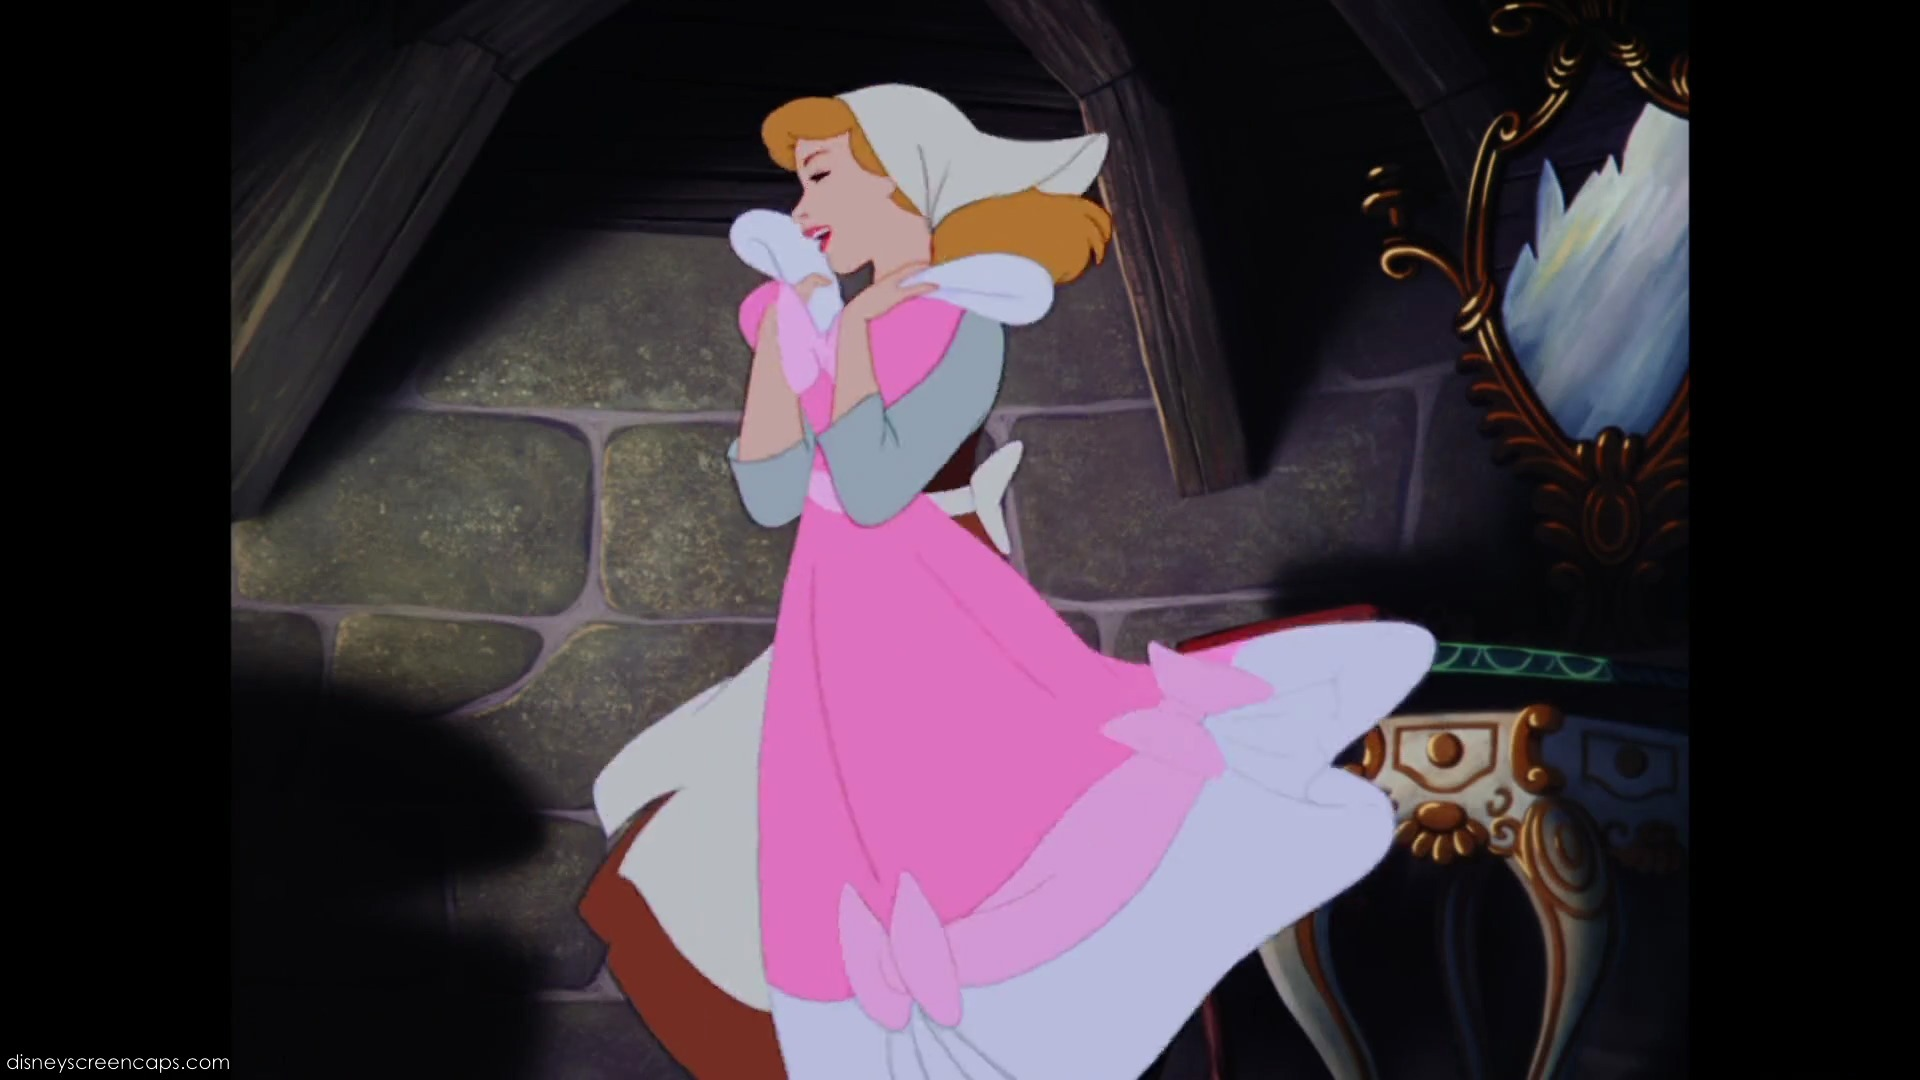 cinderella in pink dress - photo #35